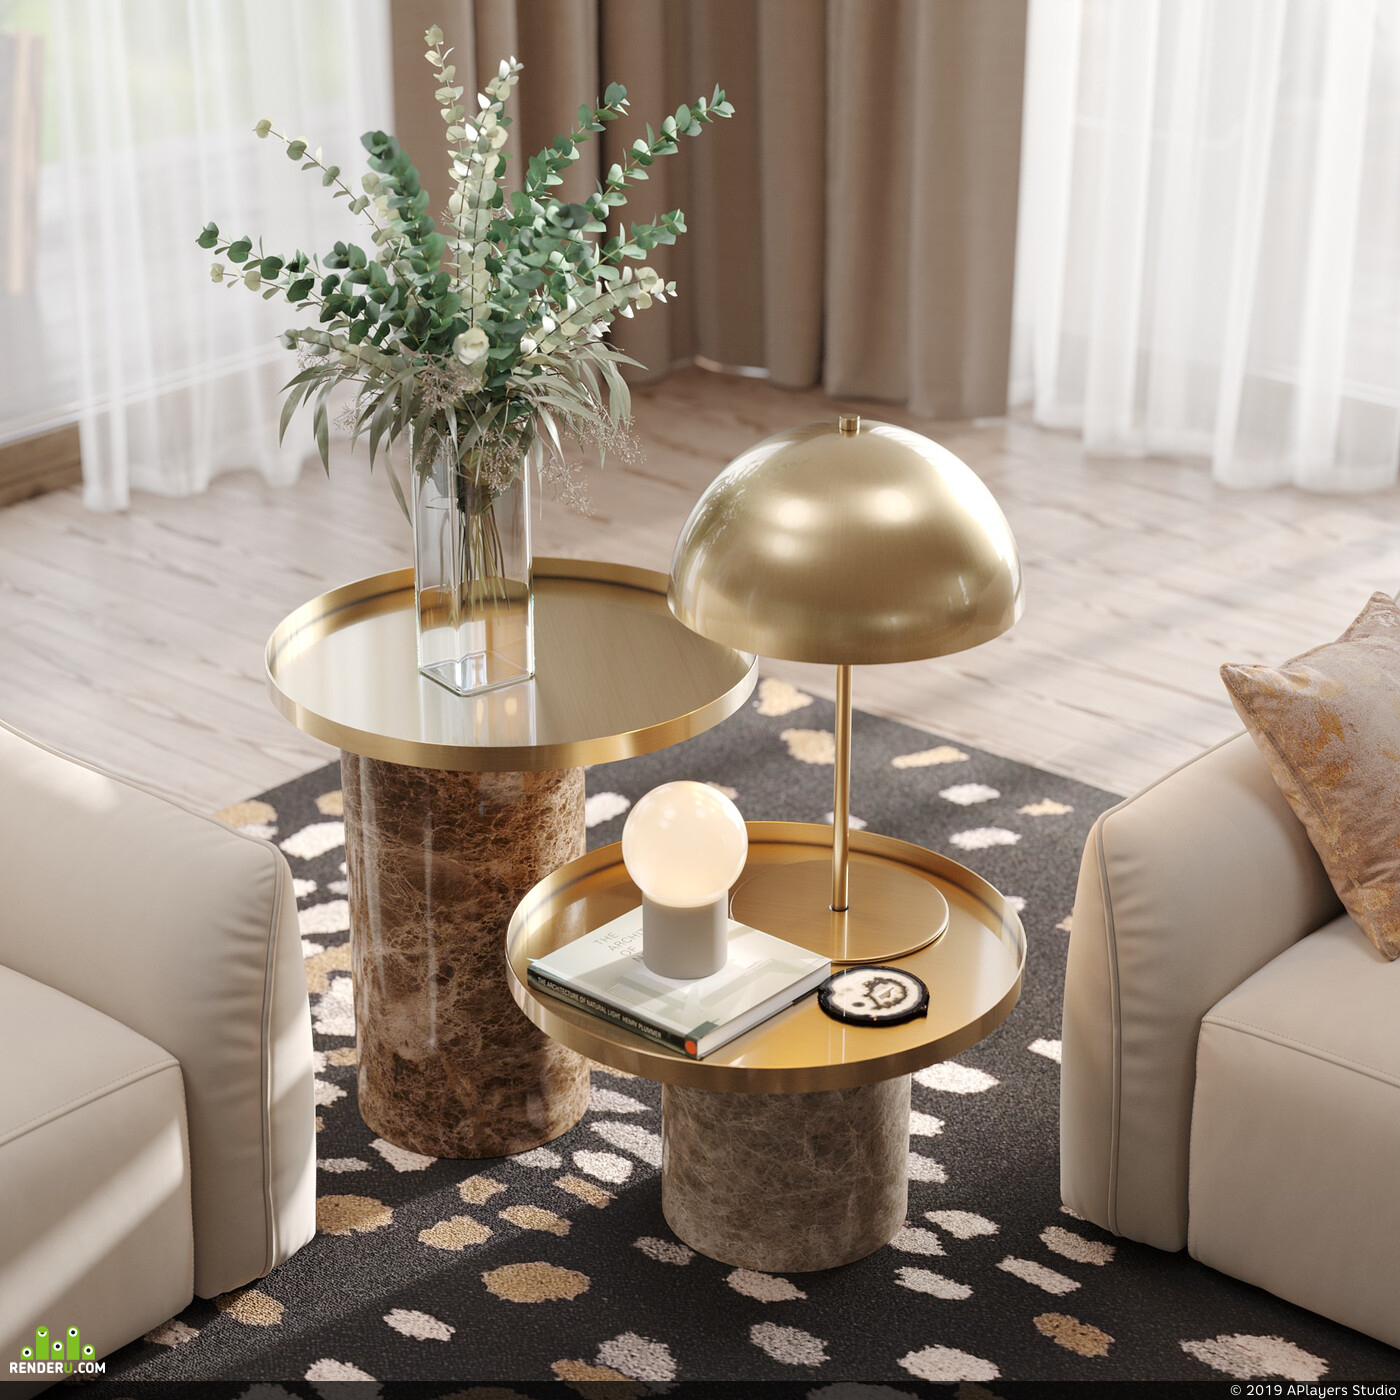 3d, cgi, furniture design, product, interiordesign, sofa